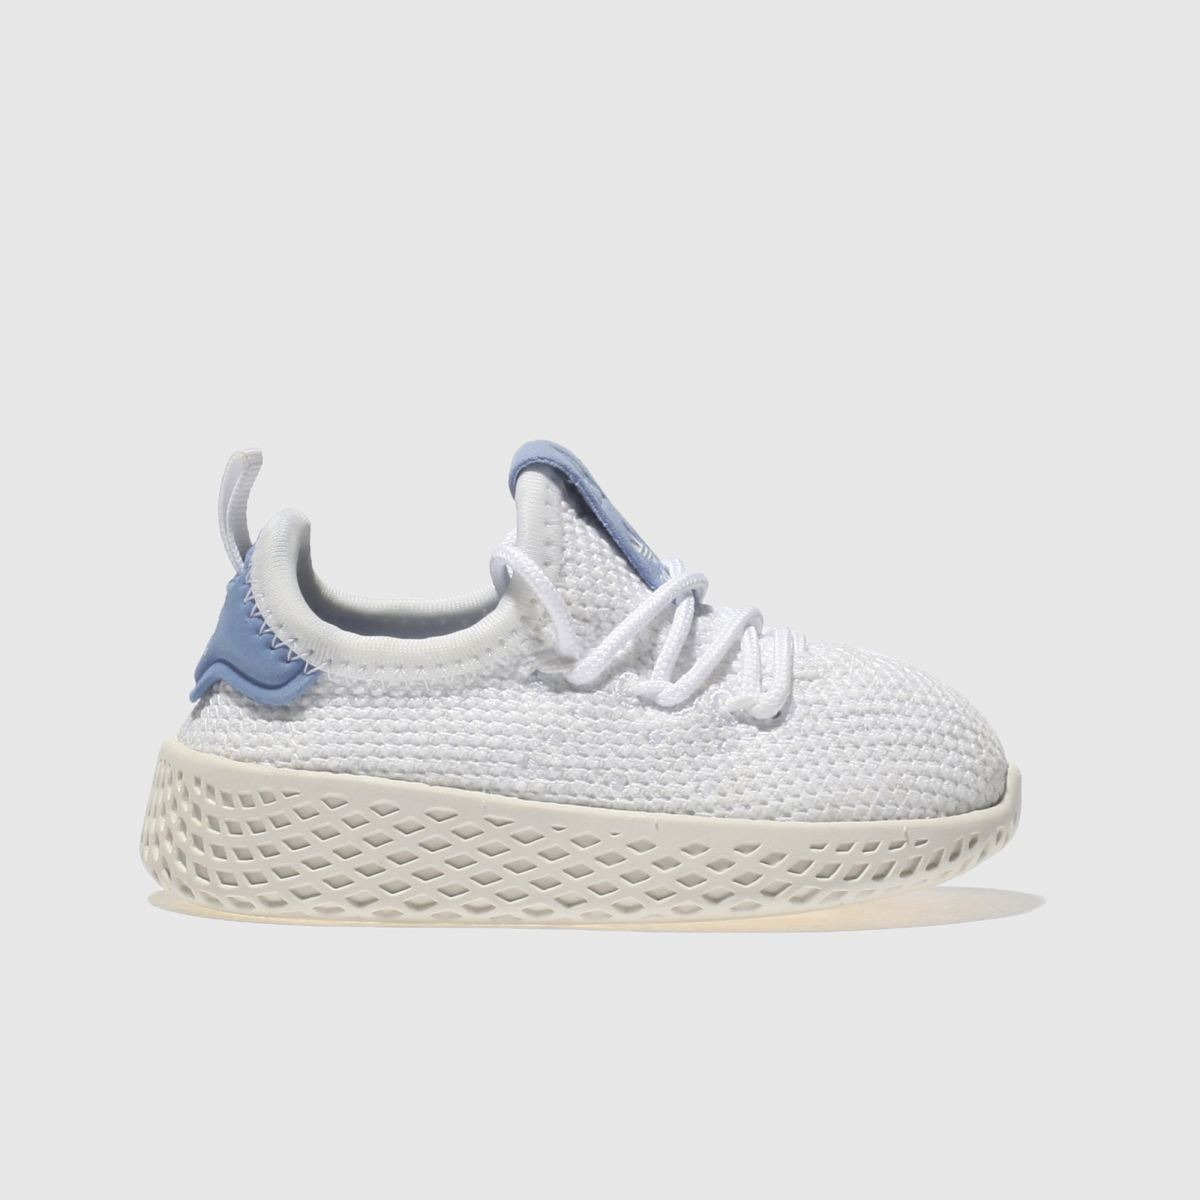 Adidas White & Blue Pharrell Williams Tennis Hu Unisex Toddler Toddler